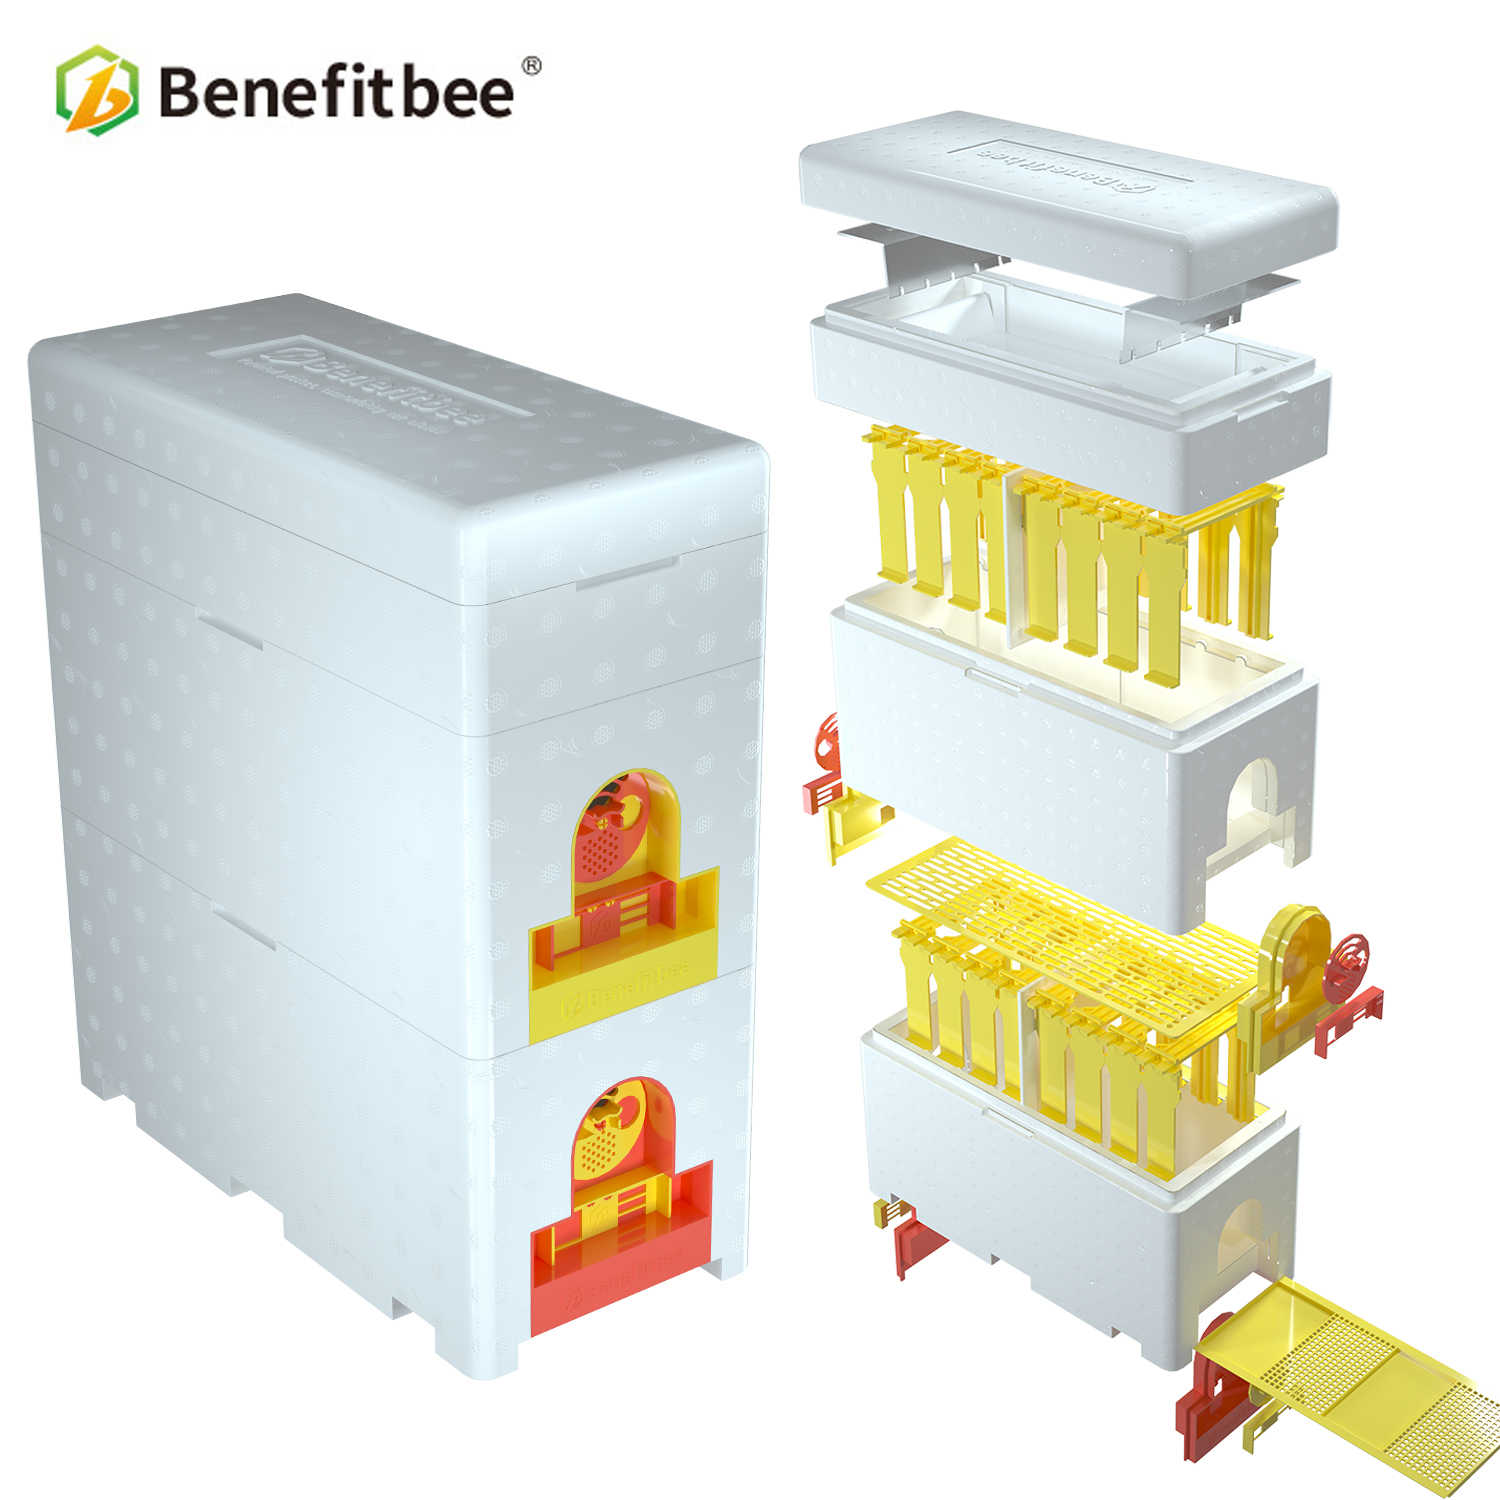 Benefitbee Brand Multi-Functional Queen Bee Hive Plastic Foam Material Double Box Queen Rearing Beehive Beekeeping Tool Bee Nest